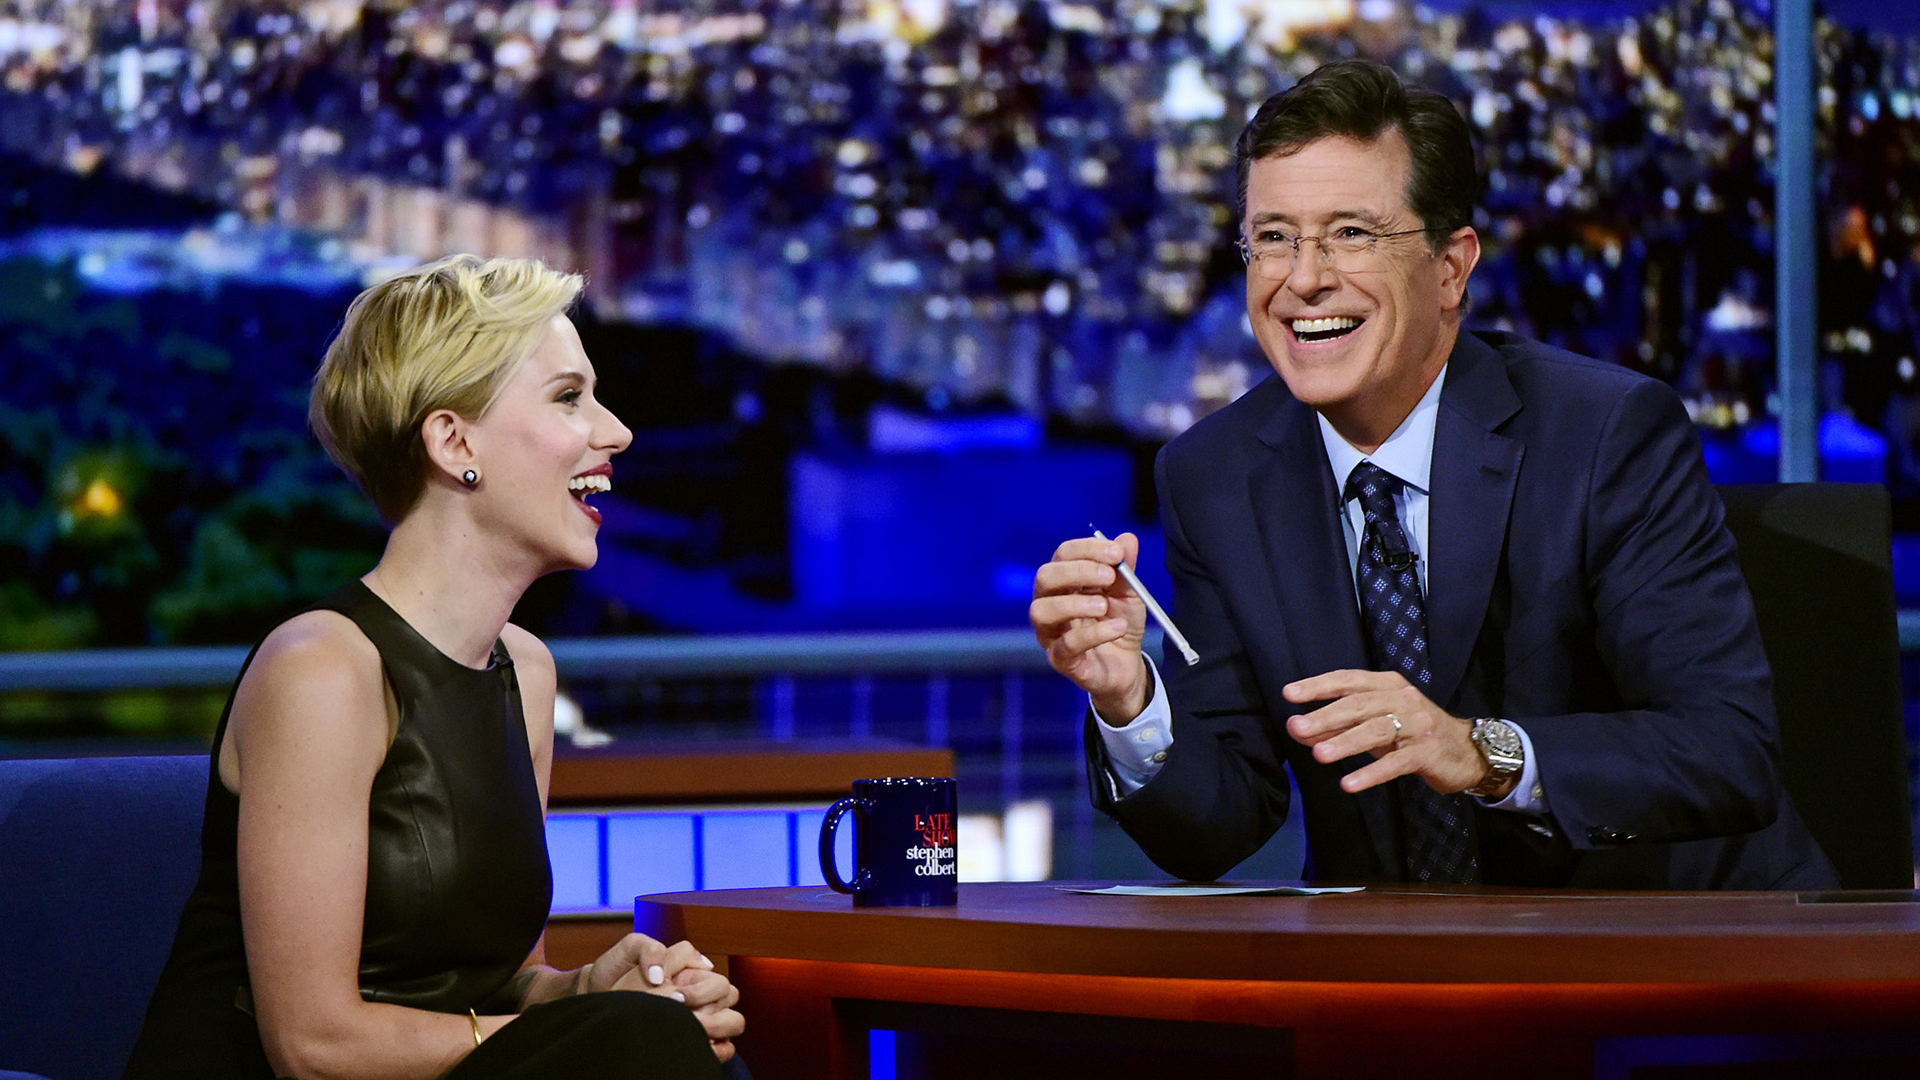 Scarlett Johansson and Stephen Colbert